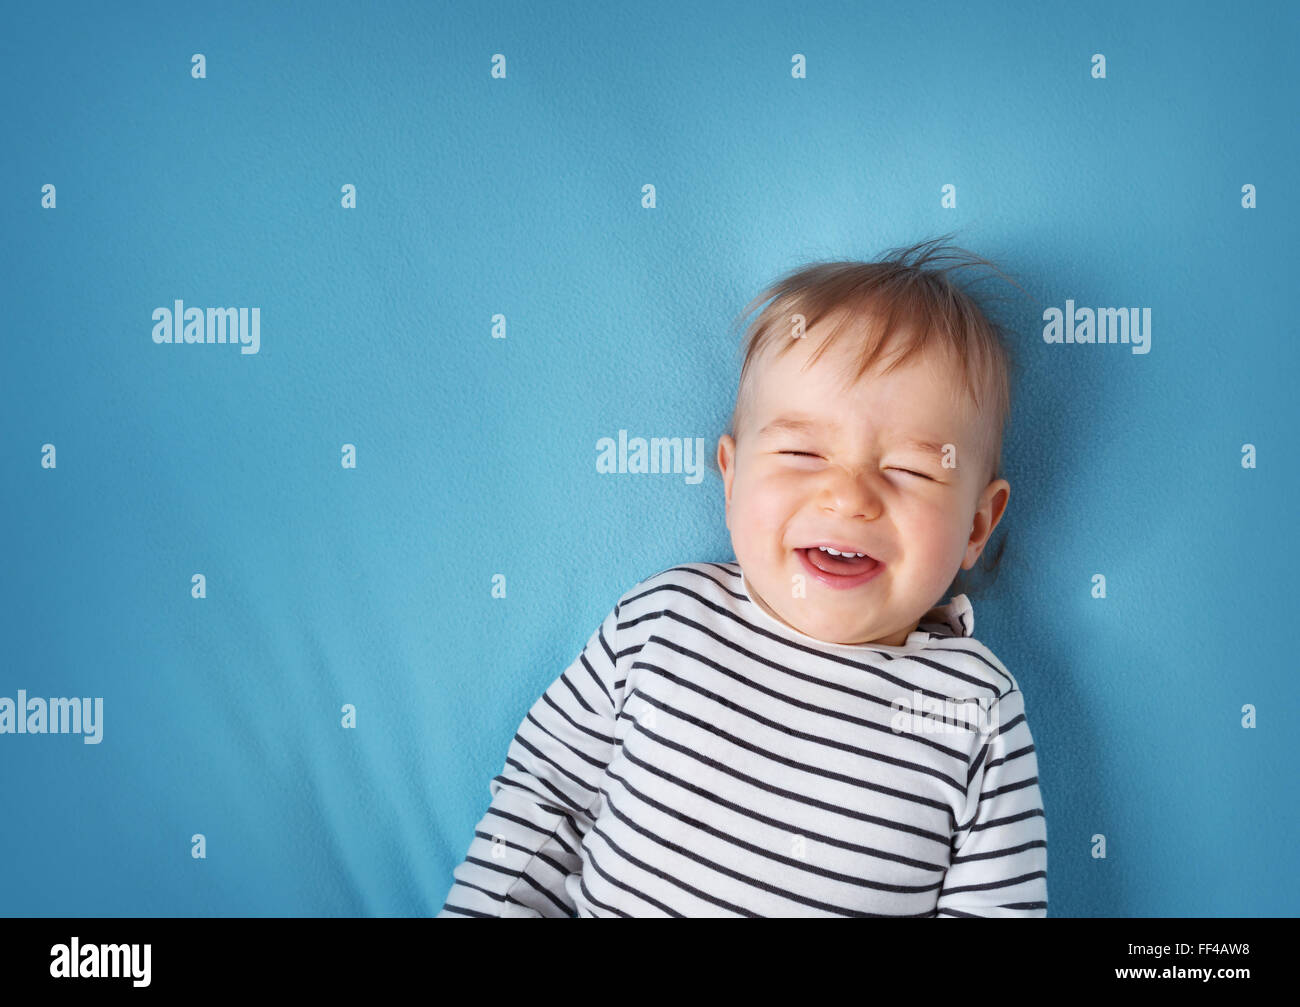 little boy on blue blanket background Stock Photo